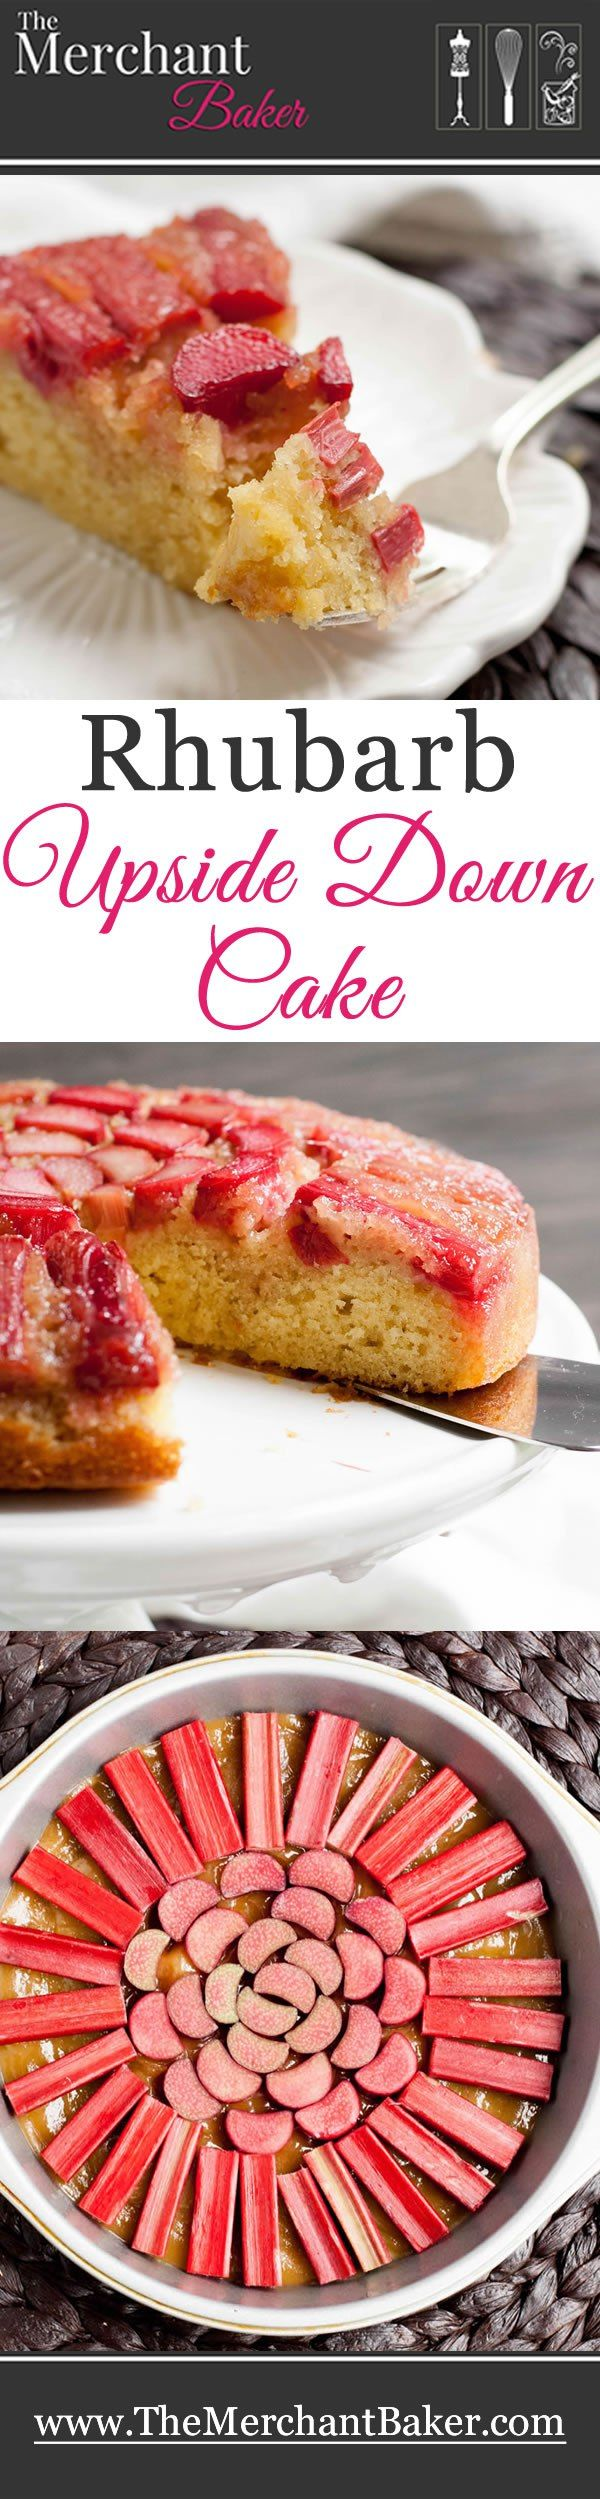 Rhubarb Upside Down Cake. Tart rhubarb gets baked in a buttery brown sugar caramel sauce and sits atop a deliciously easy, one bowl buttermilk cake.